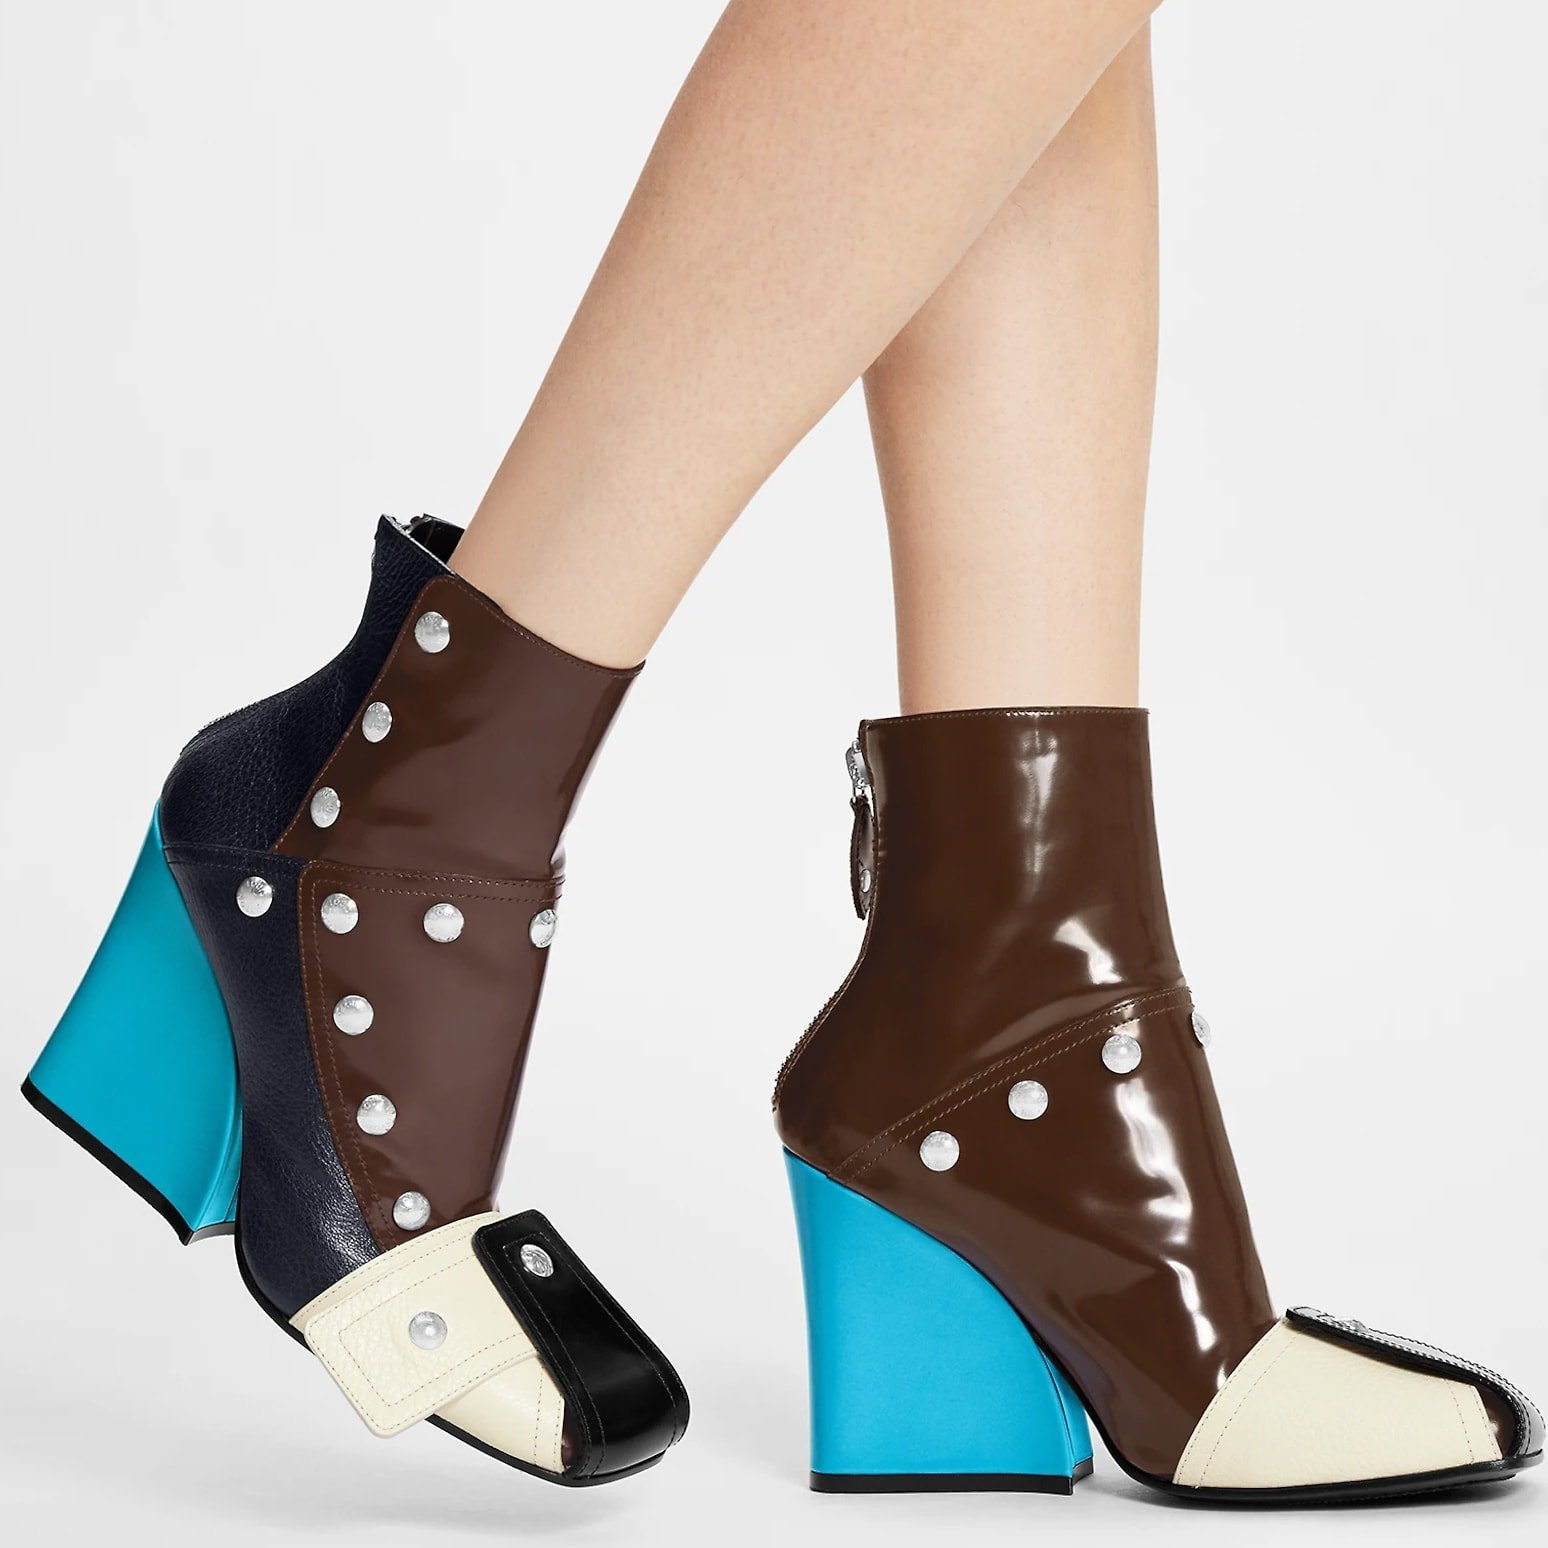 Louis Vuitton's Patti wedge ankle boot combines calf leather with supple, grained goat leather